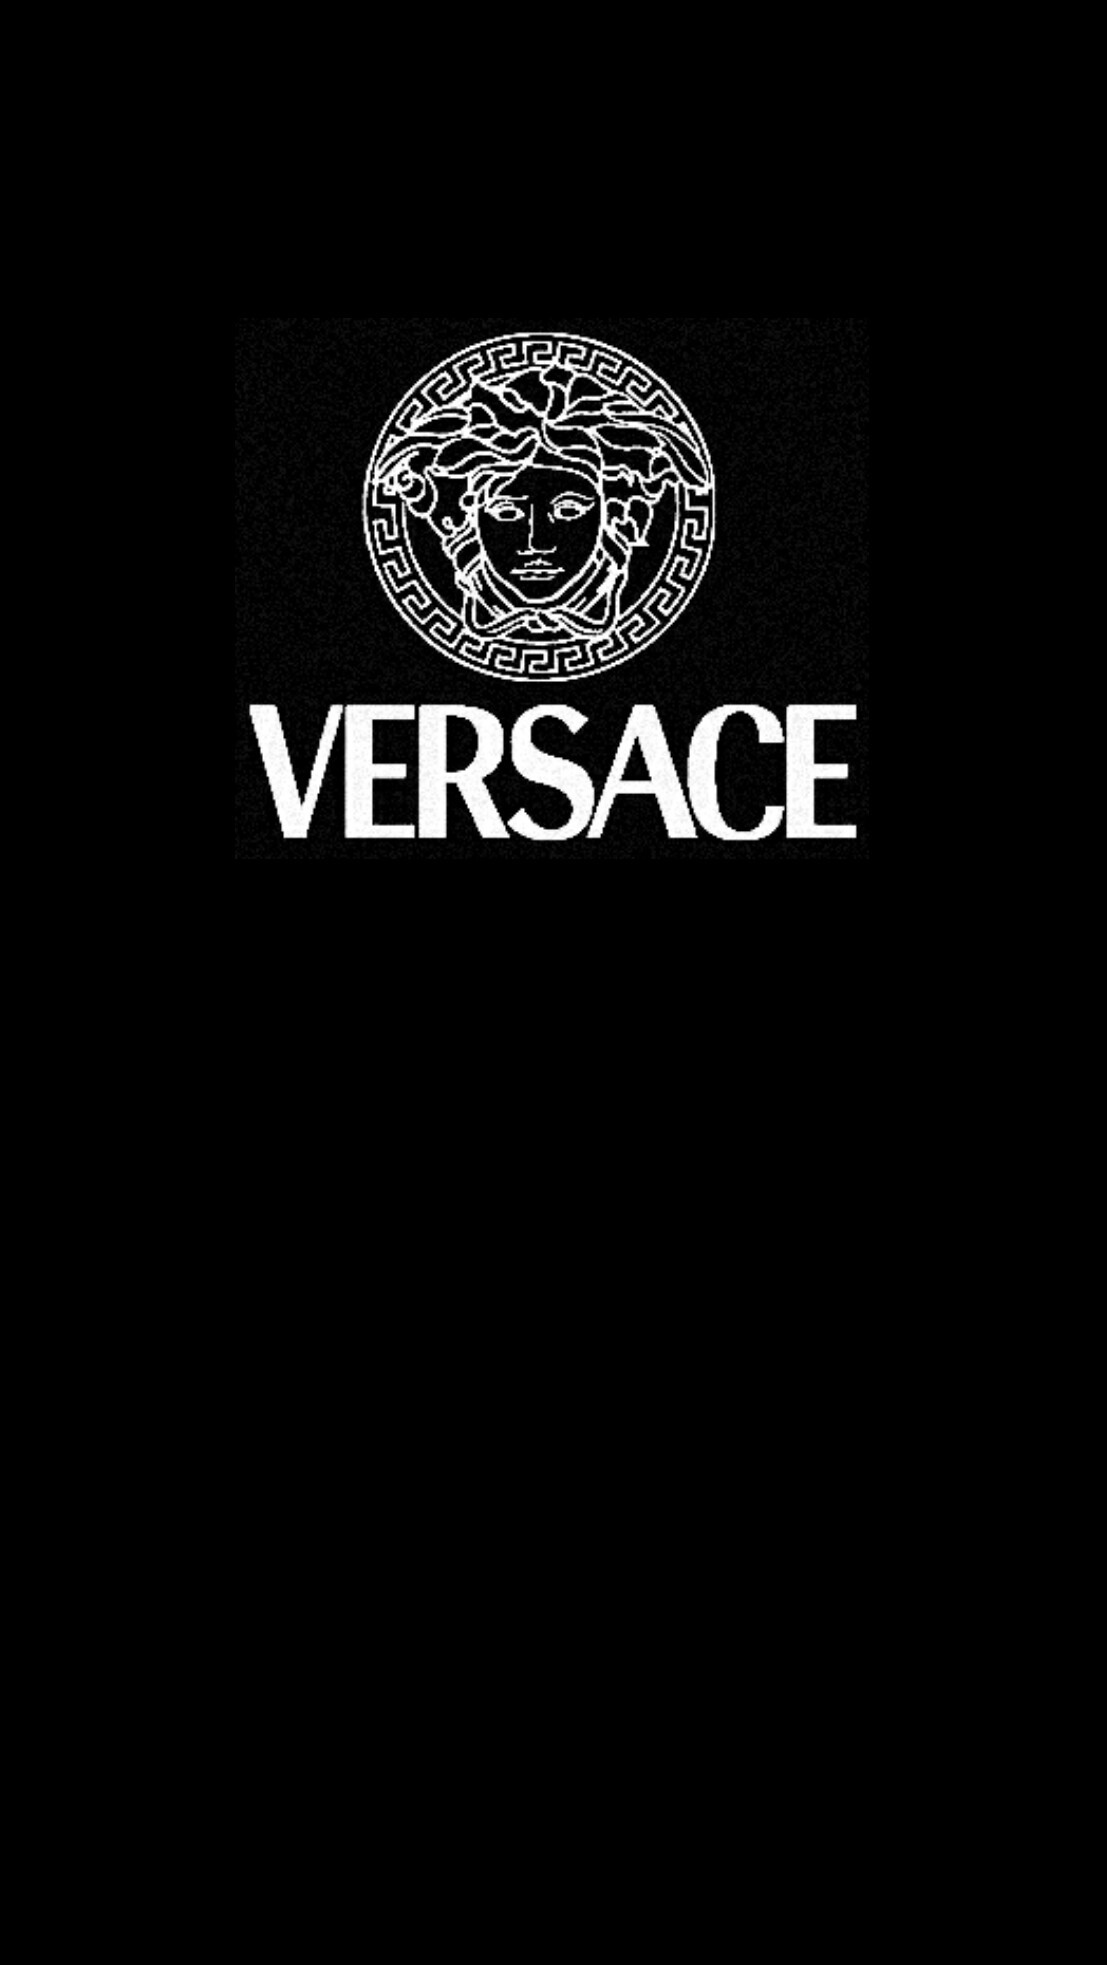 Versace Iphone Wallpaper 63 Images